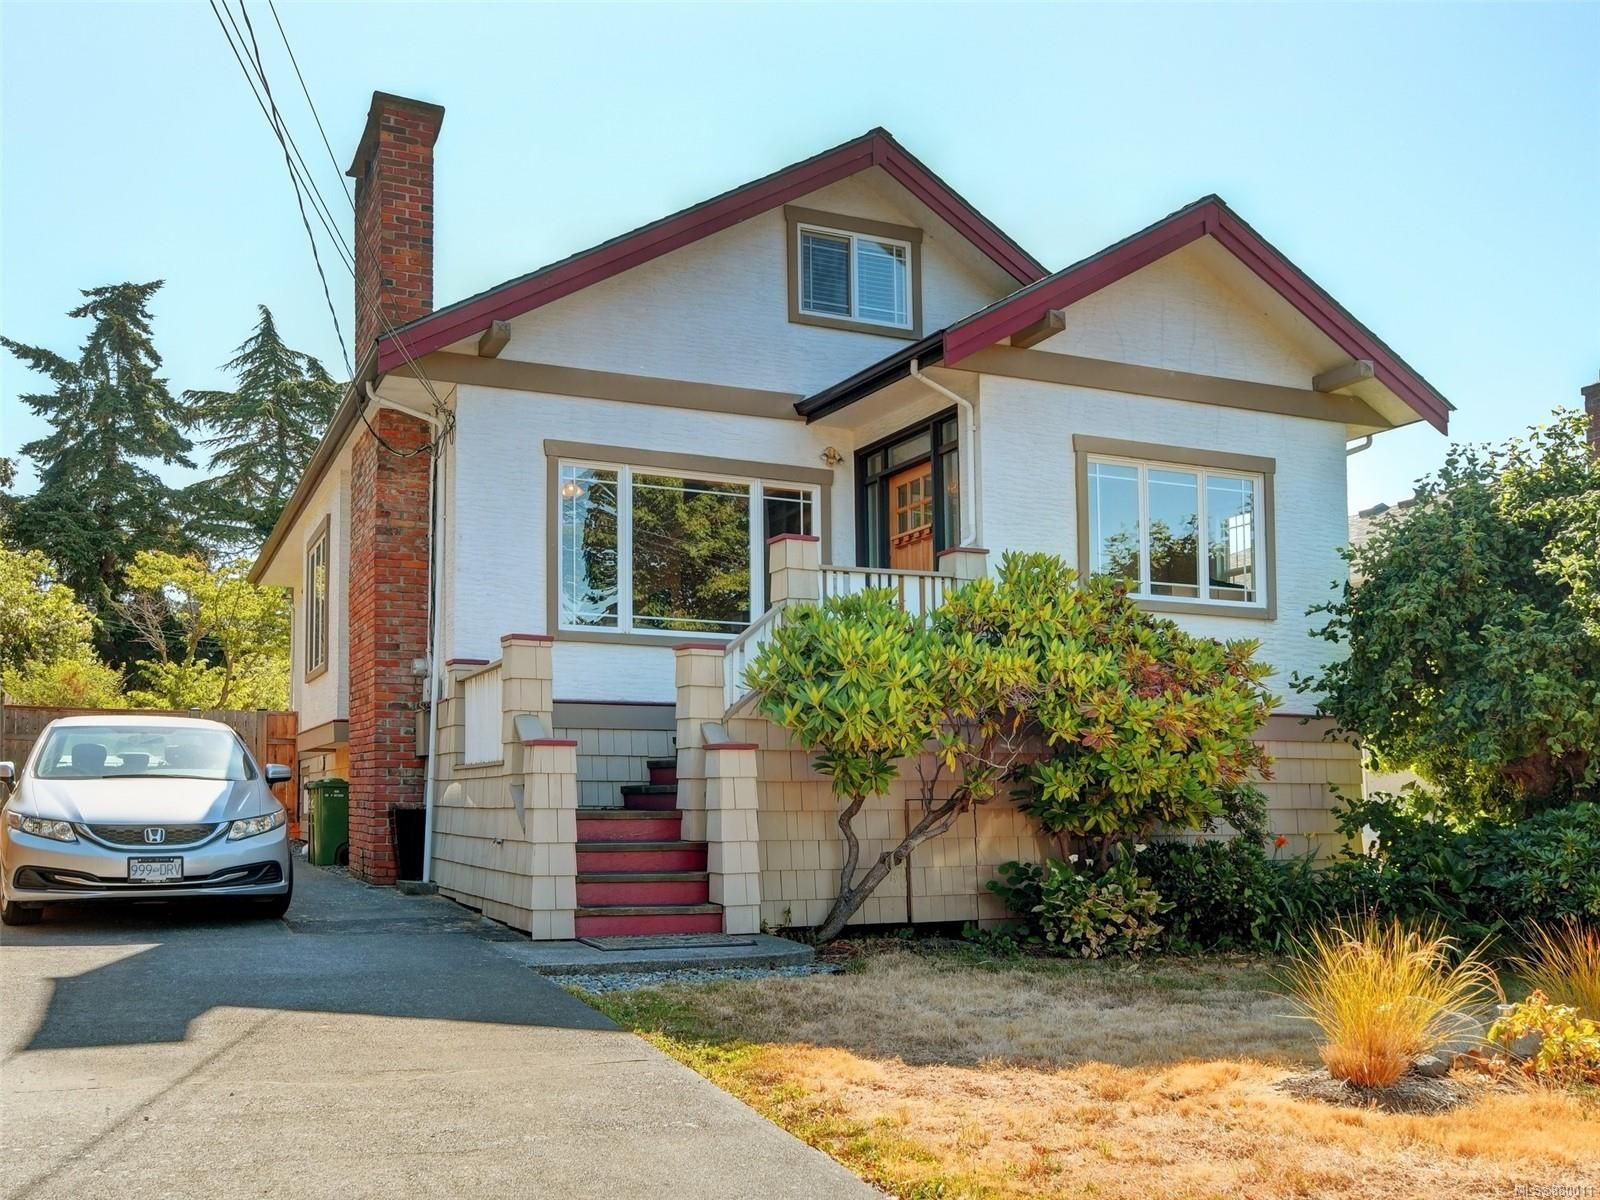 Main Photo: 2635 Mt. Stephen Ave in : Vi Oaklands House for sale (Victoria)  : MLS®# 880011